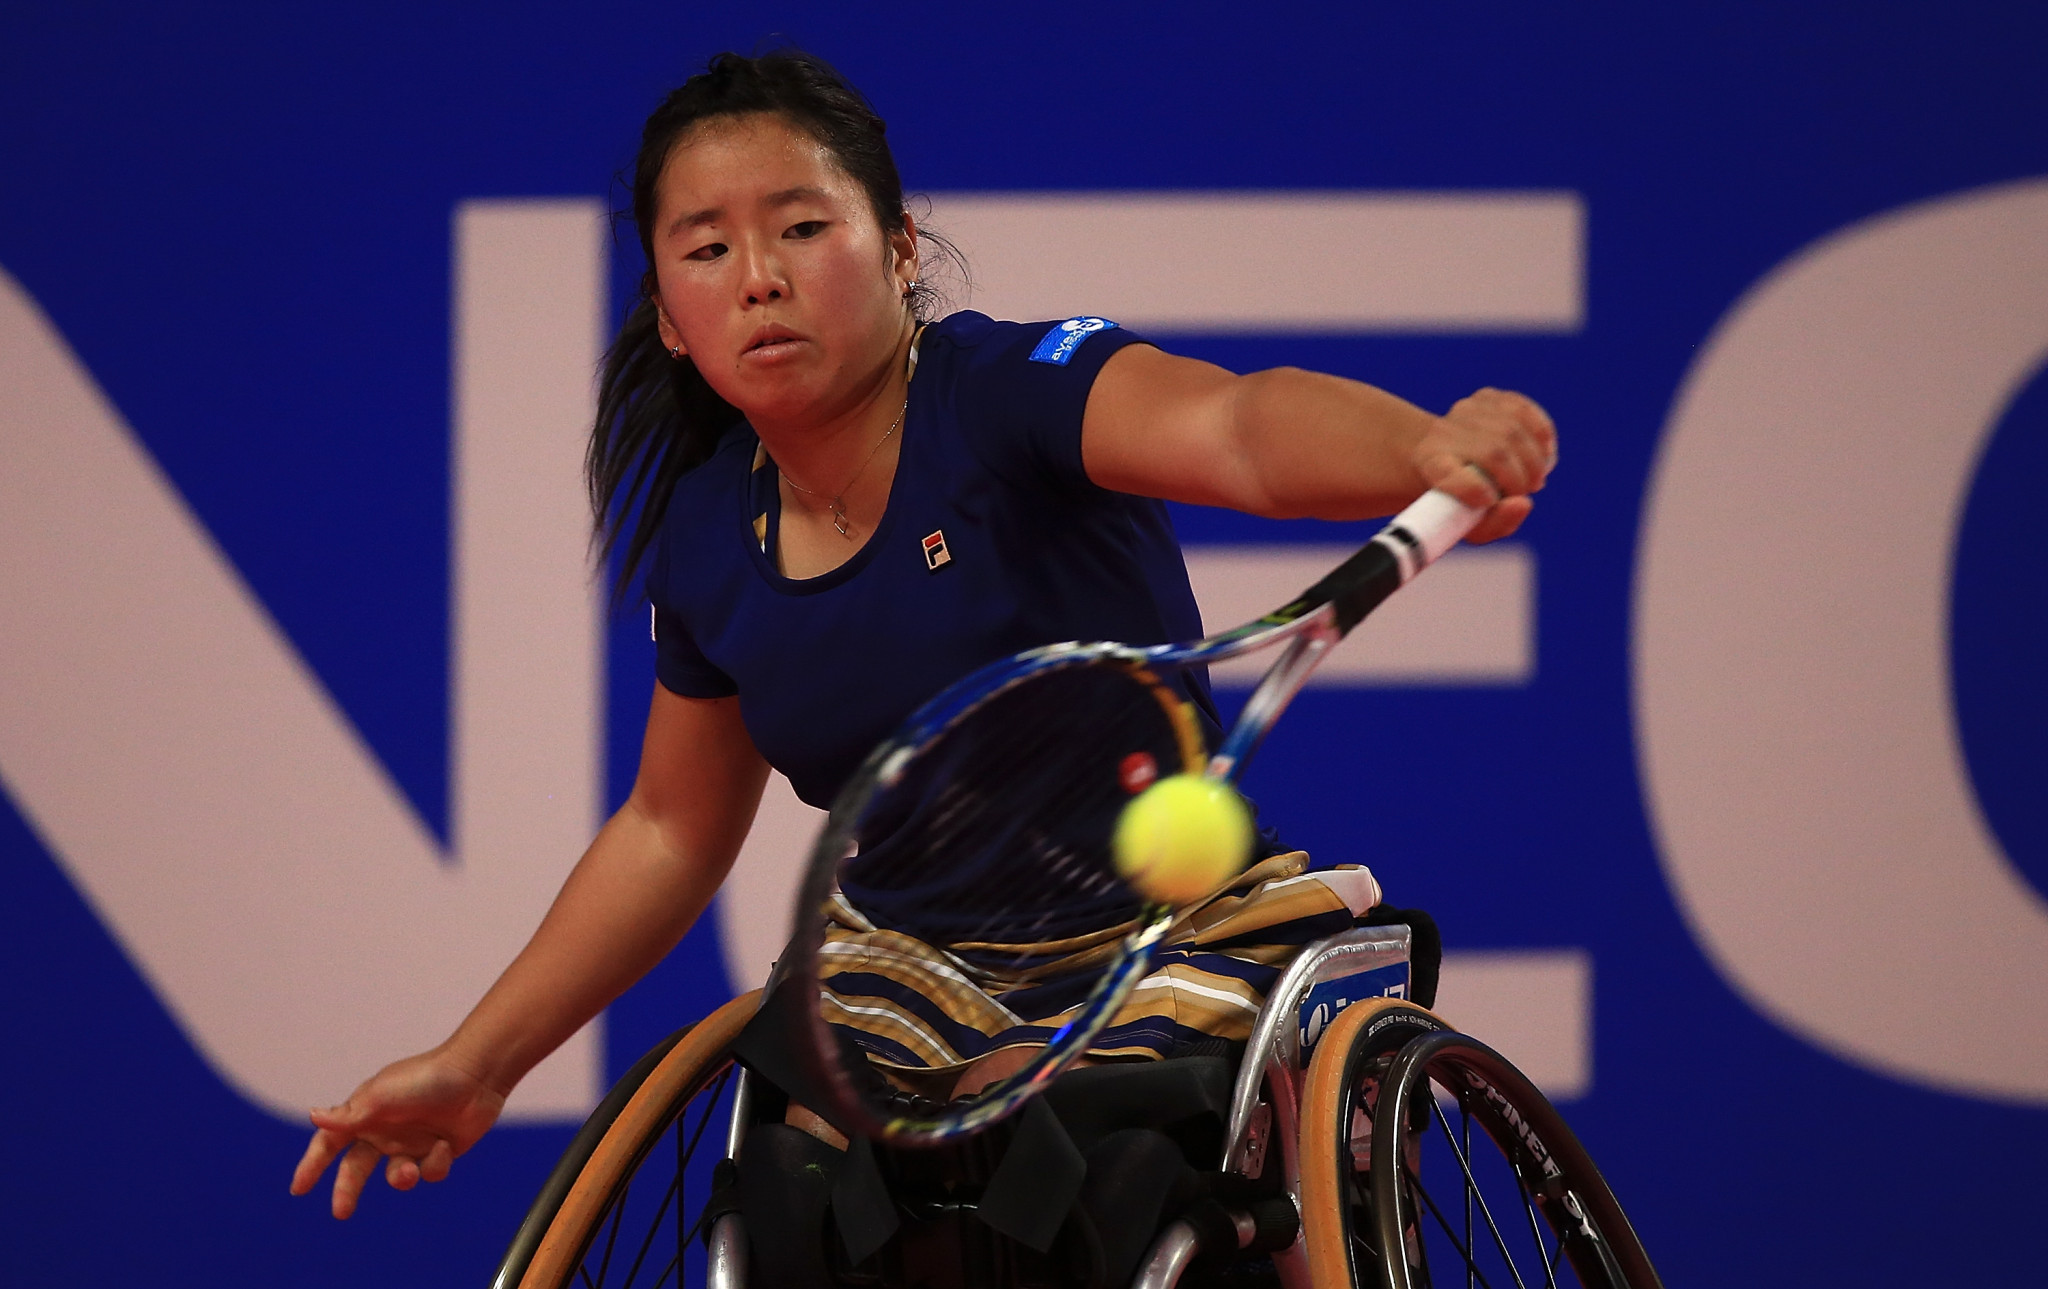 NEC Corporation extends wheelchair tennis partnership for three years